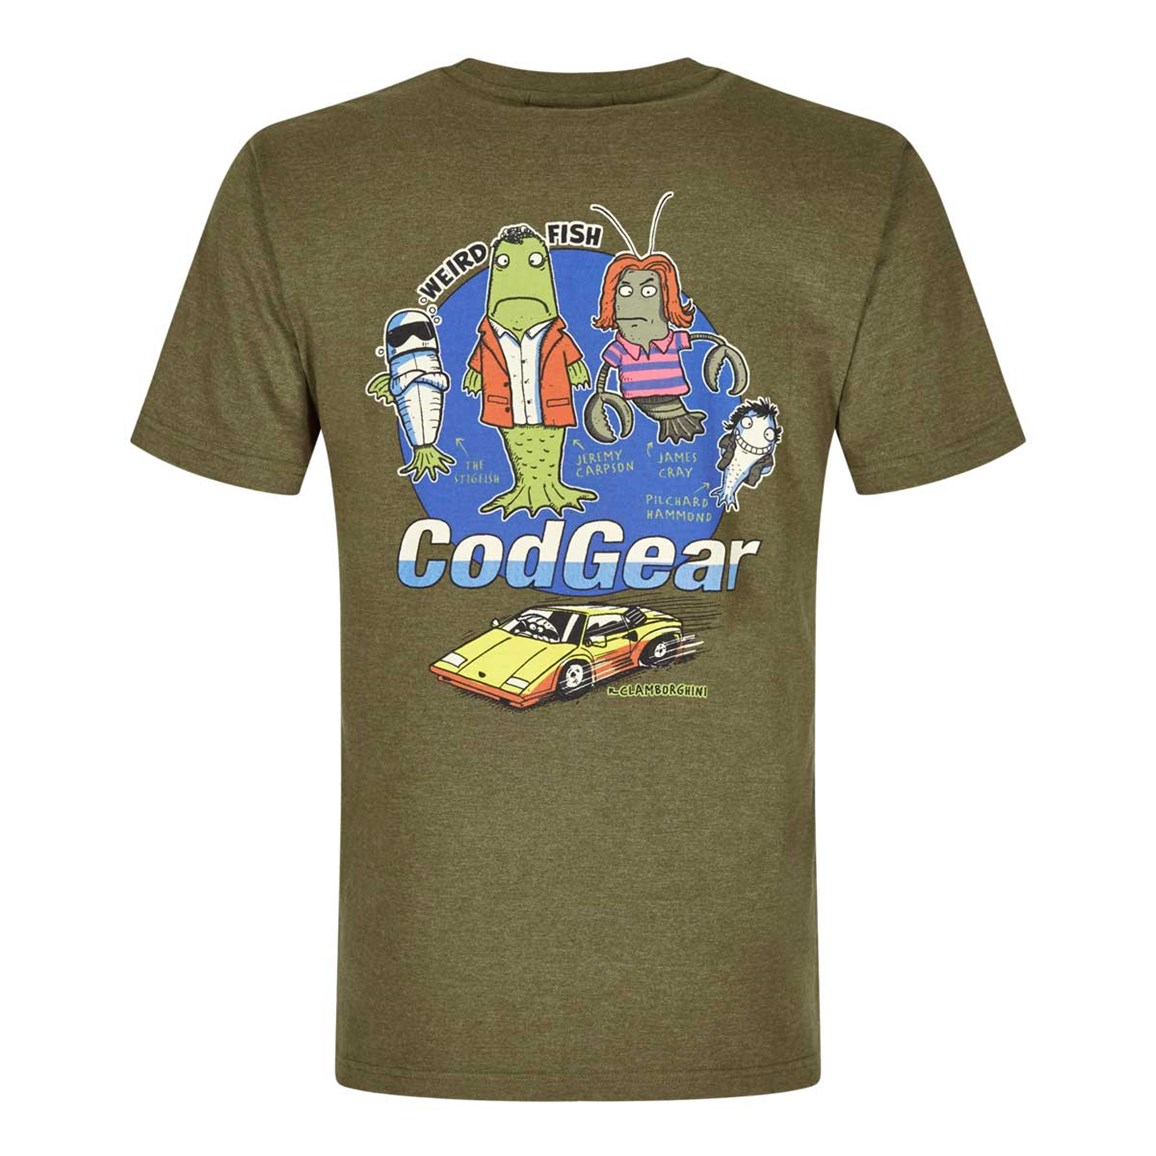 Weird Fish Cod Gear Printed Artist T-Shirt Military Olive Marl